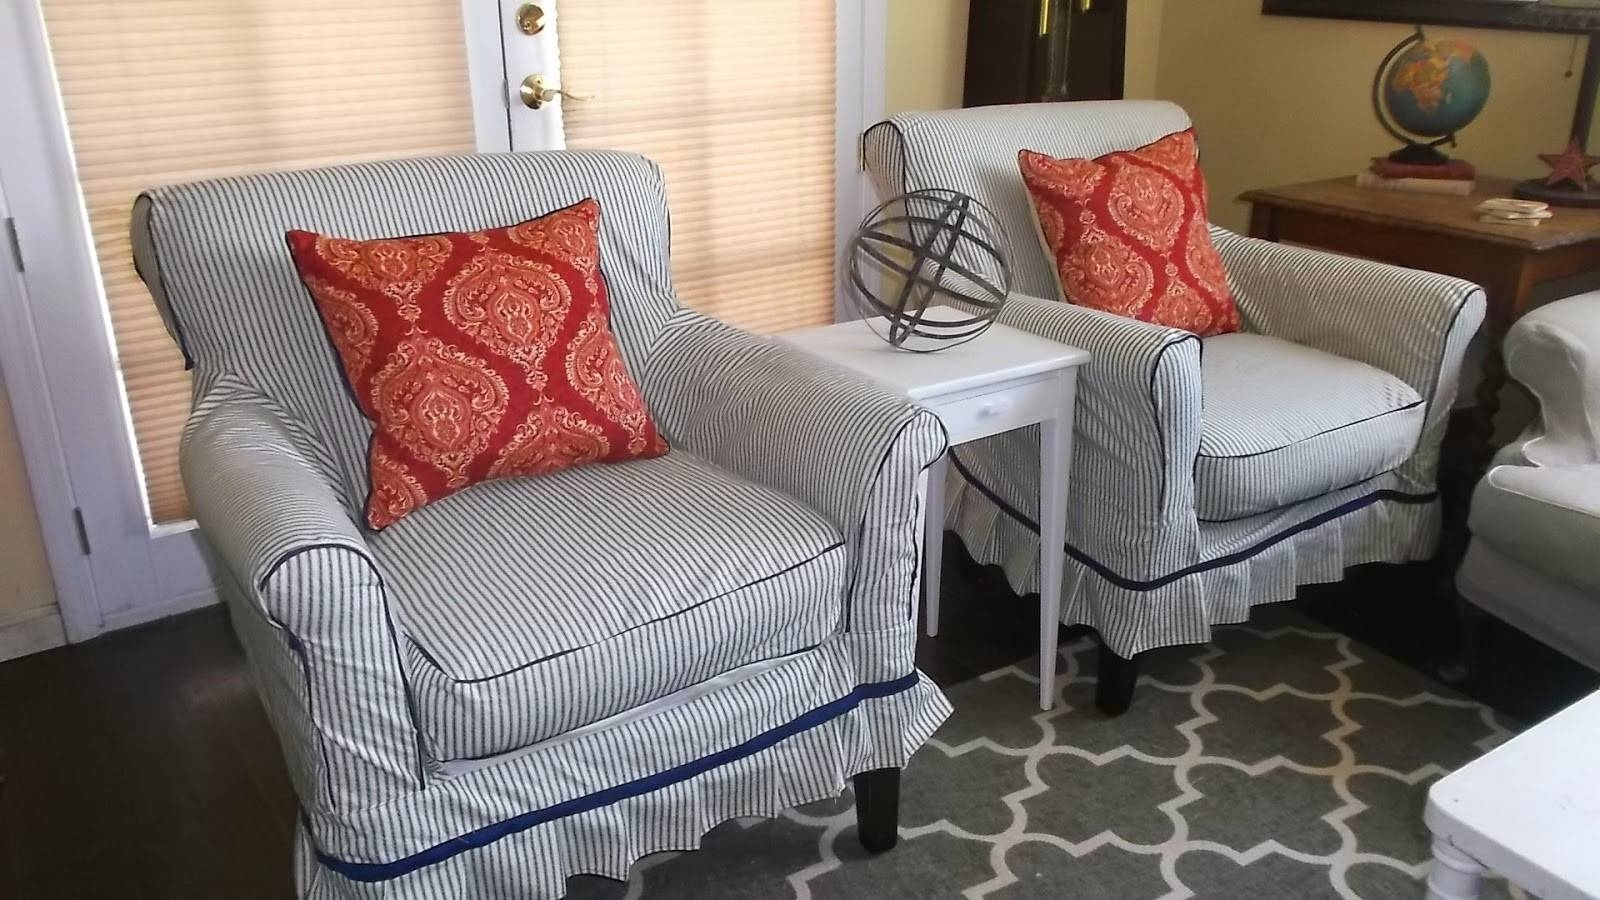 Living A Cottage Life: Ticking-Stripe Slip Covers in Striped Sofa Slipcovers (Image 4 of 15)